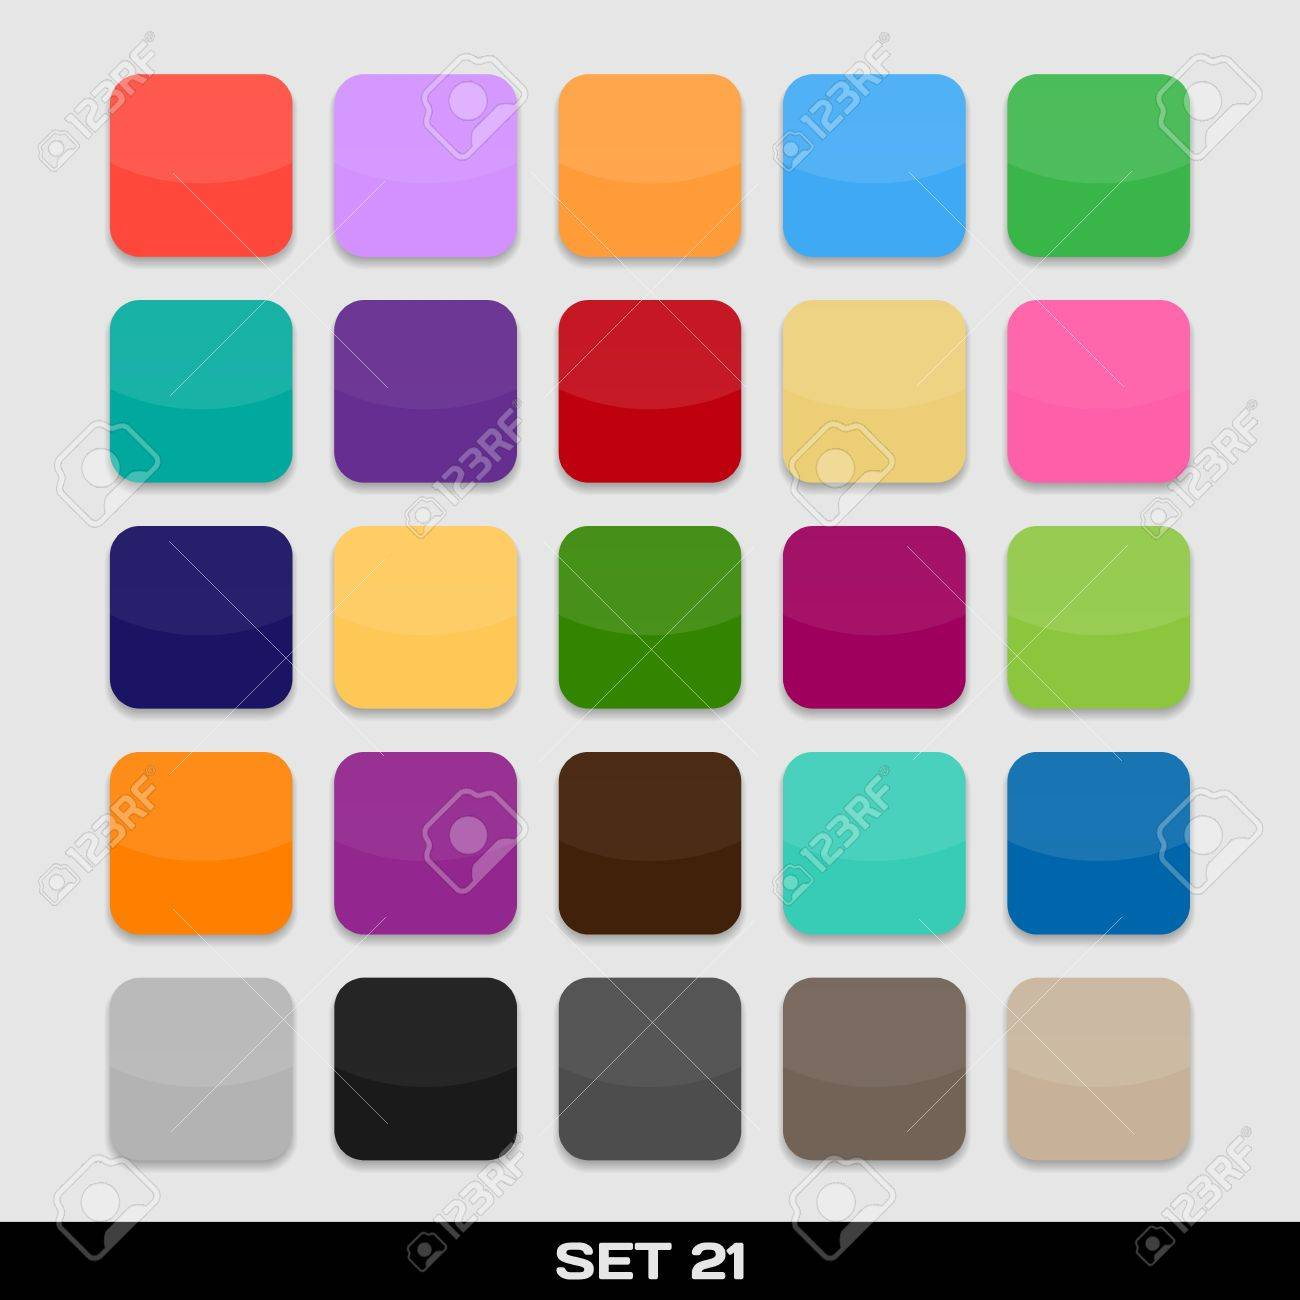 set of colorful app icon templates frames backgrounds set